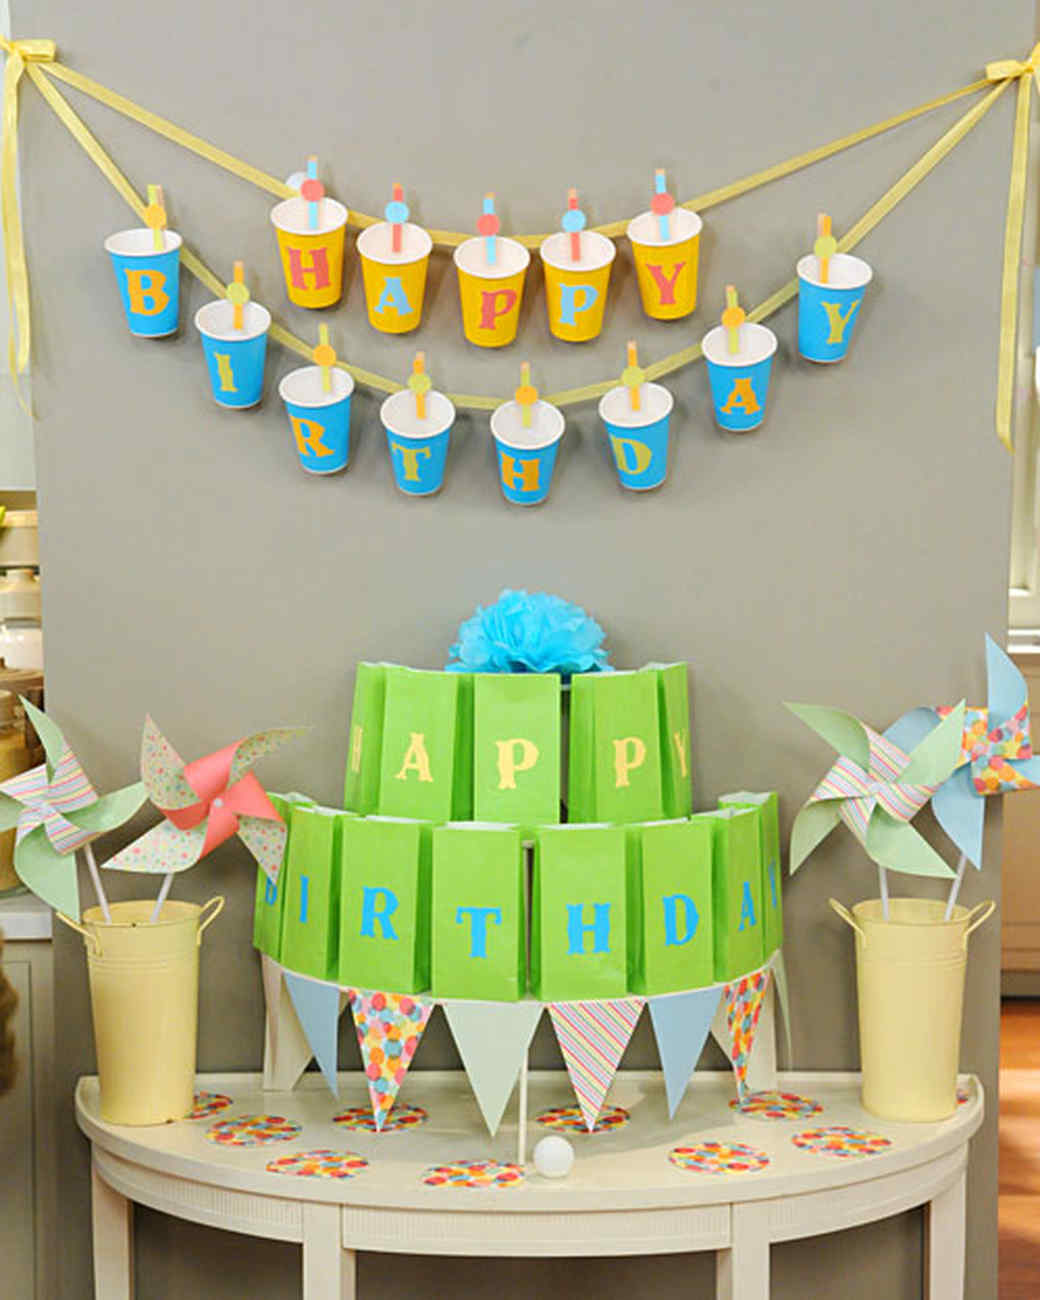 Birthday Party Clip Art And Templates